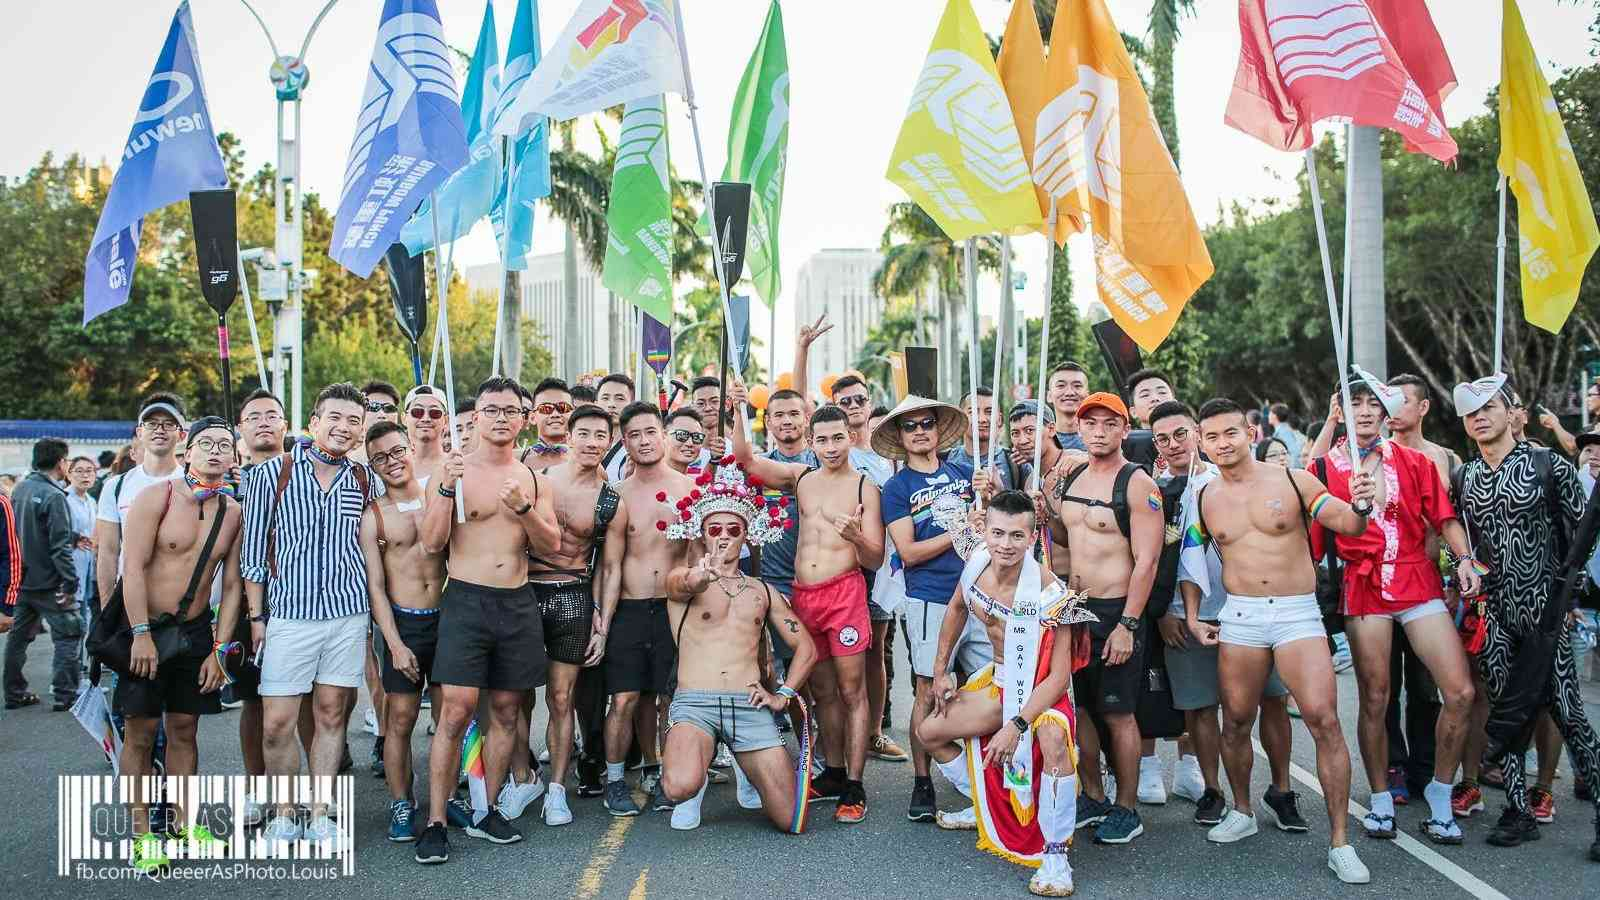 Taipei one of most gay cities in the world